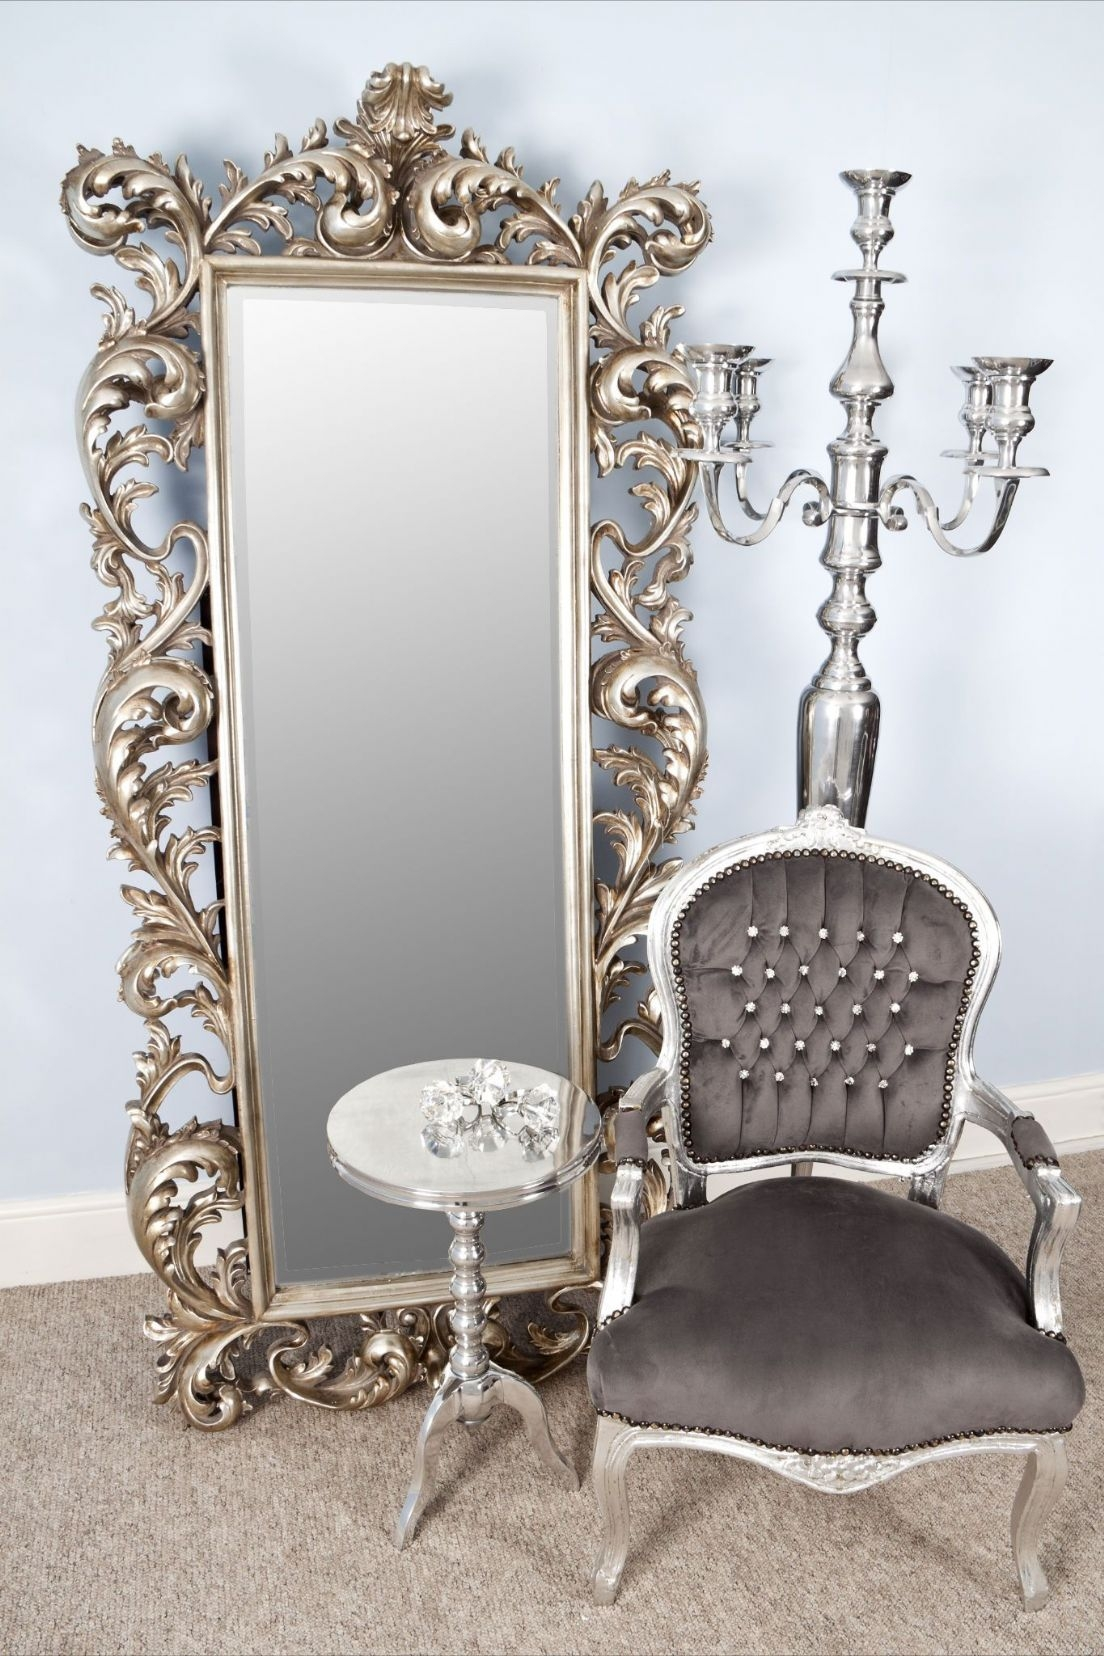 Rococo Mirrors Exclusive Mirrors Pertaining To Old Fashioned Mirrors For Sale (View 12 of 15)